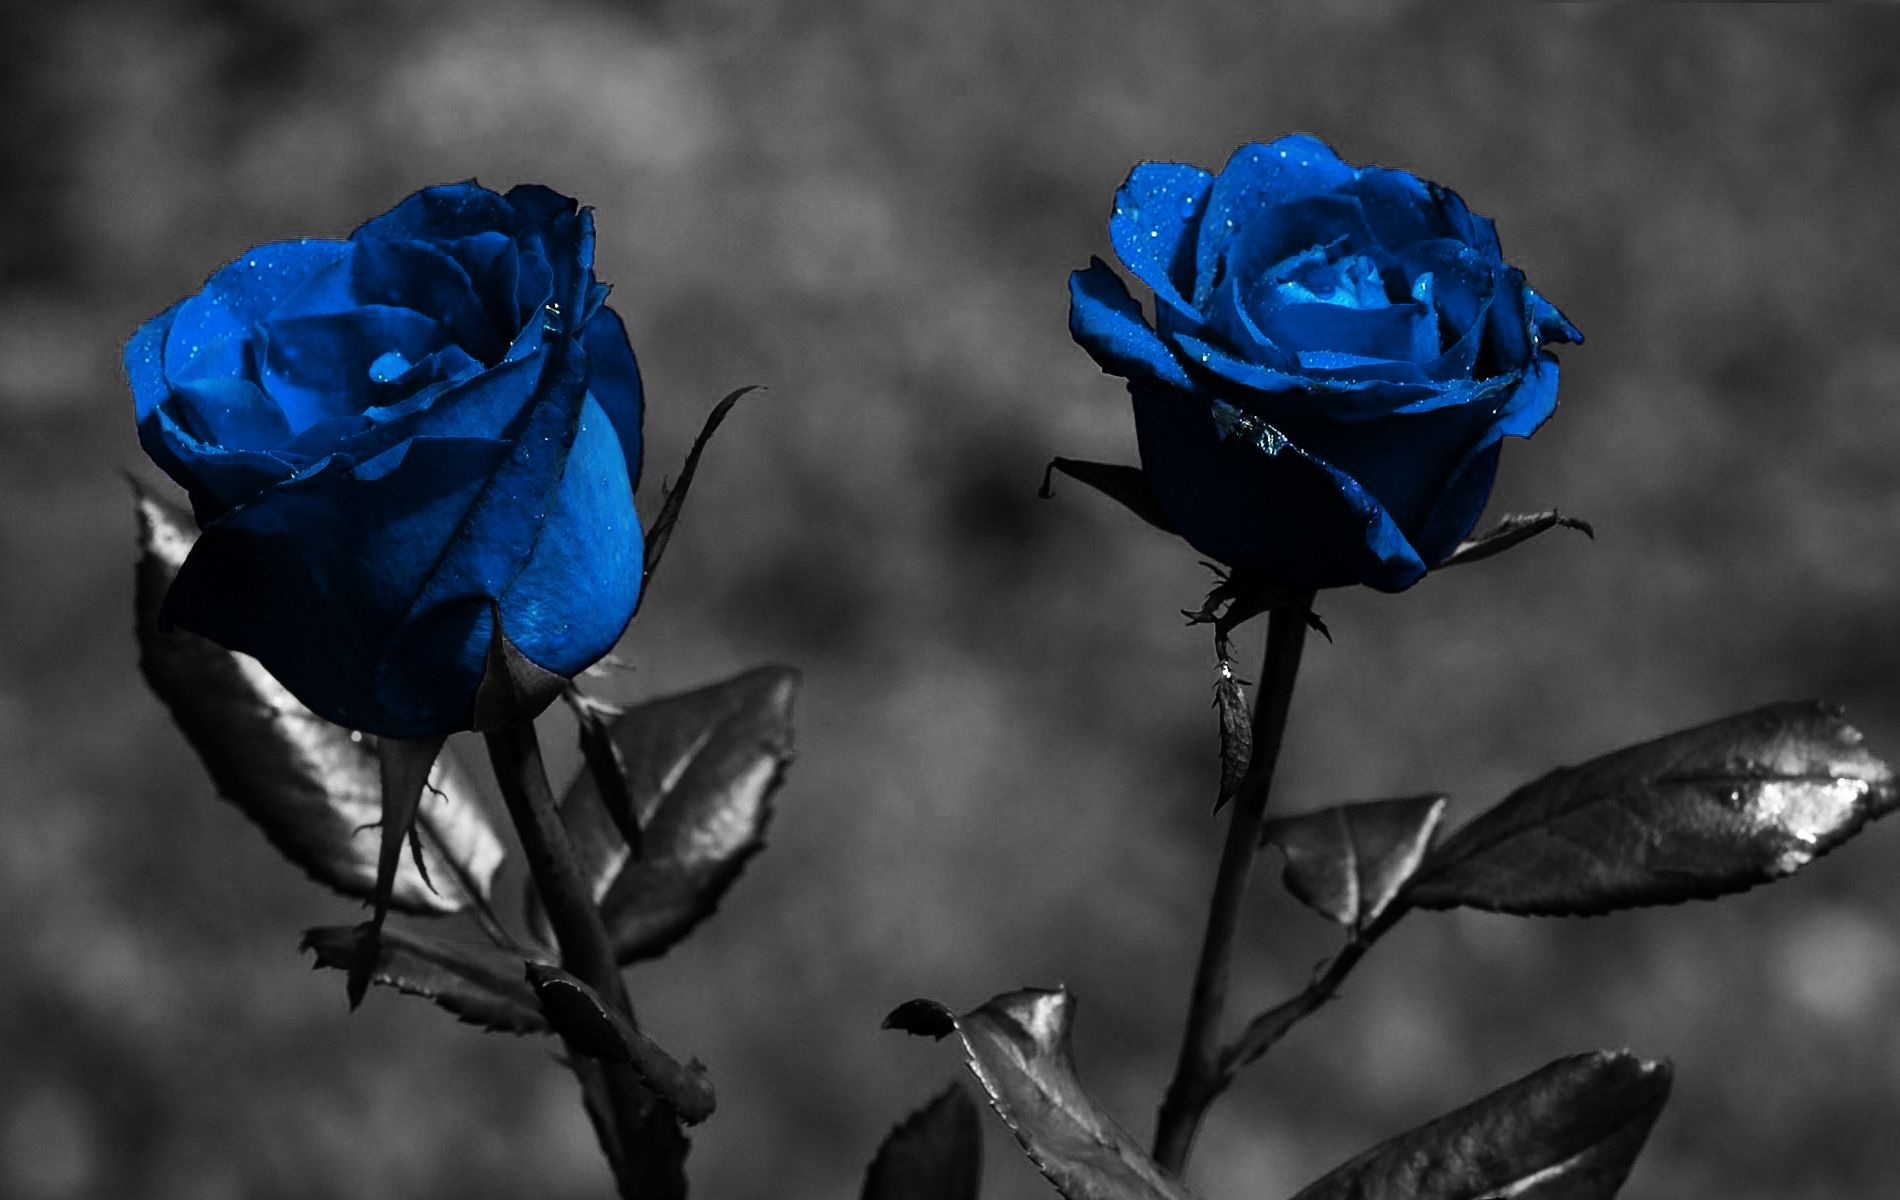 Widescreen Desktop Wallpaper Dark Flower In 2020 Blue Roses Wallpaper Rose Flower Wallpaper Black Rose Flower